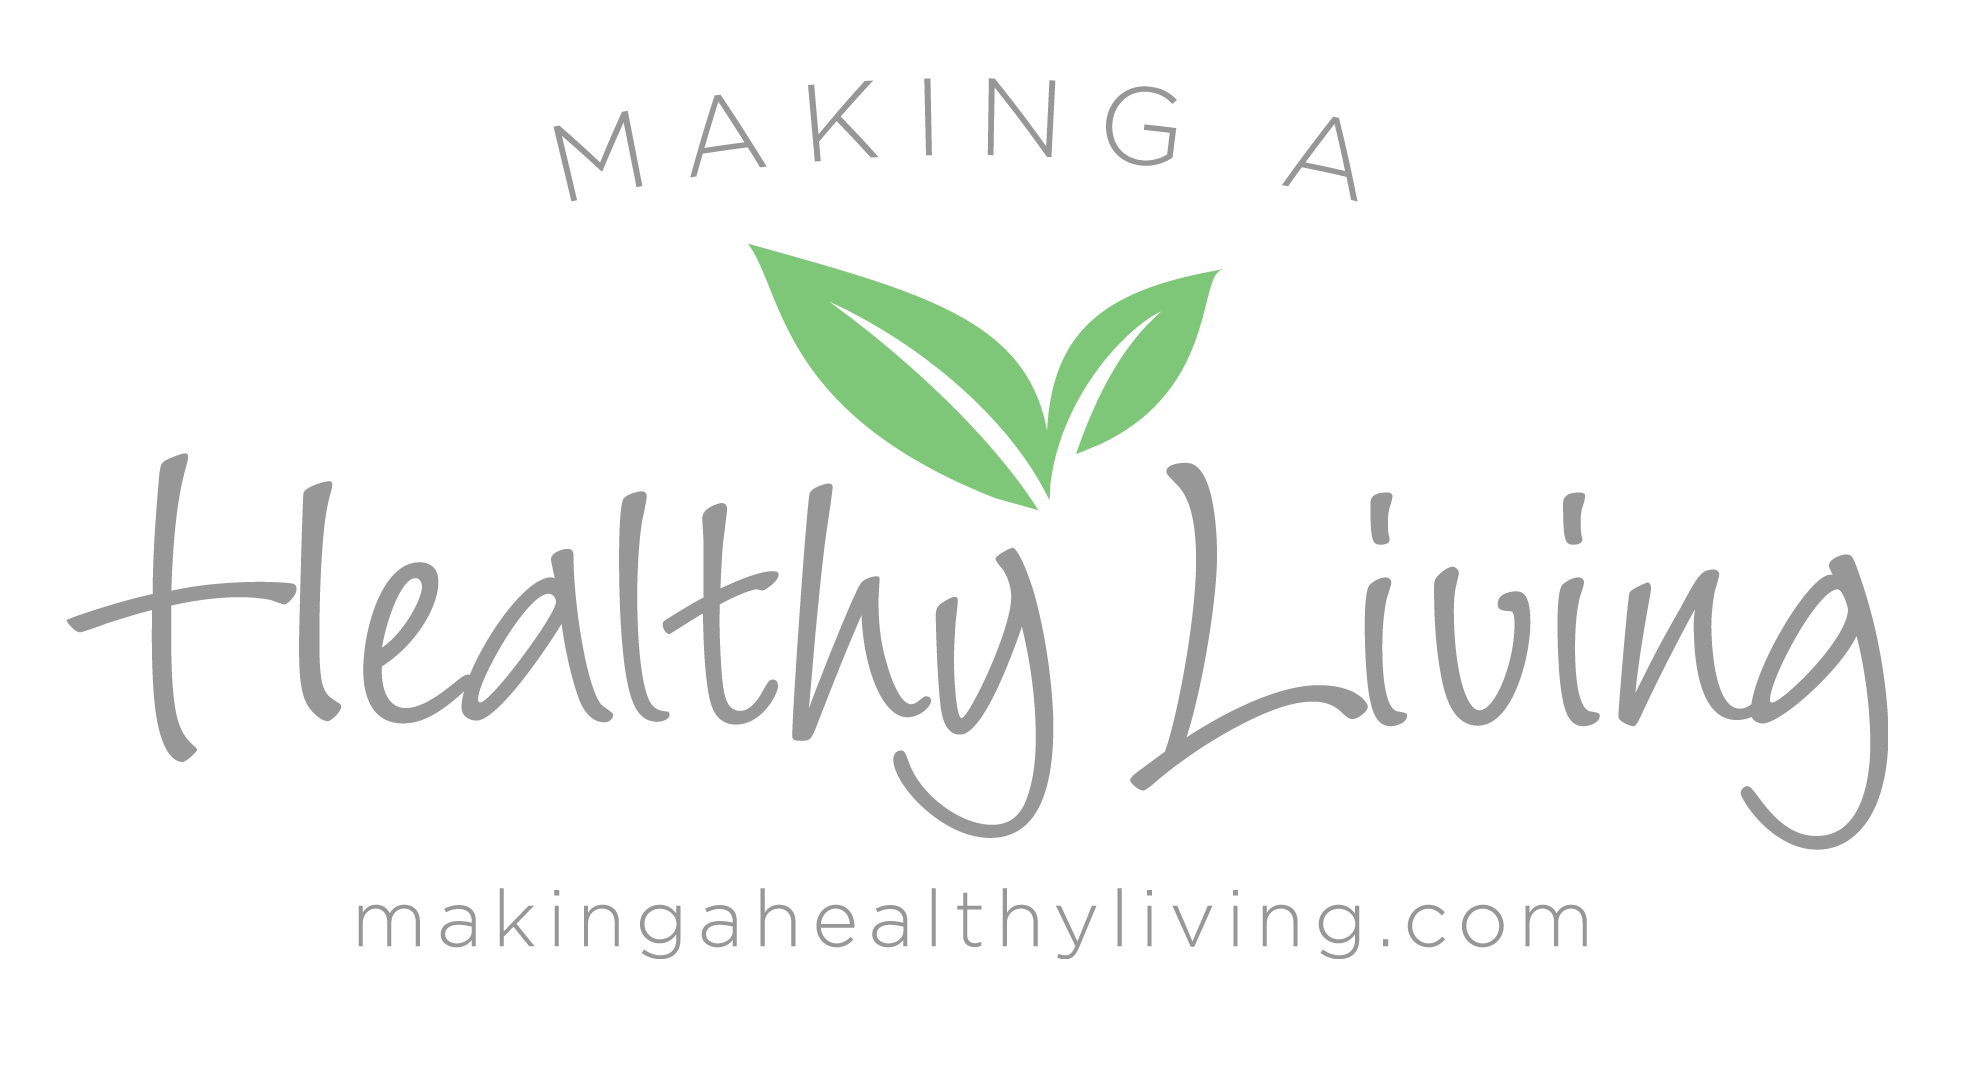 Making a Healthy Living